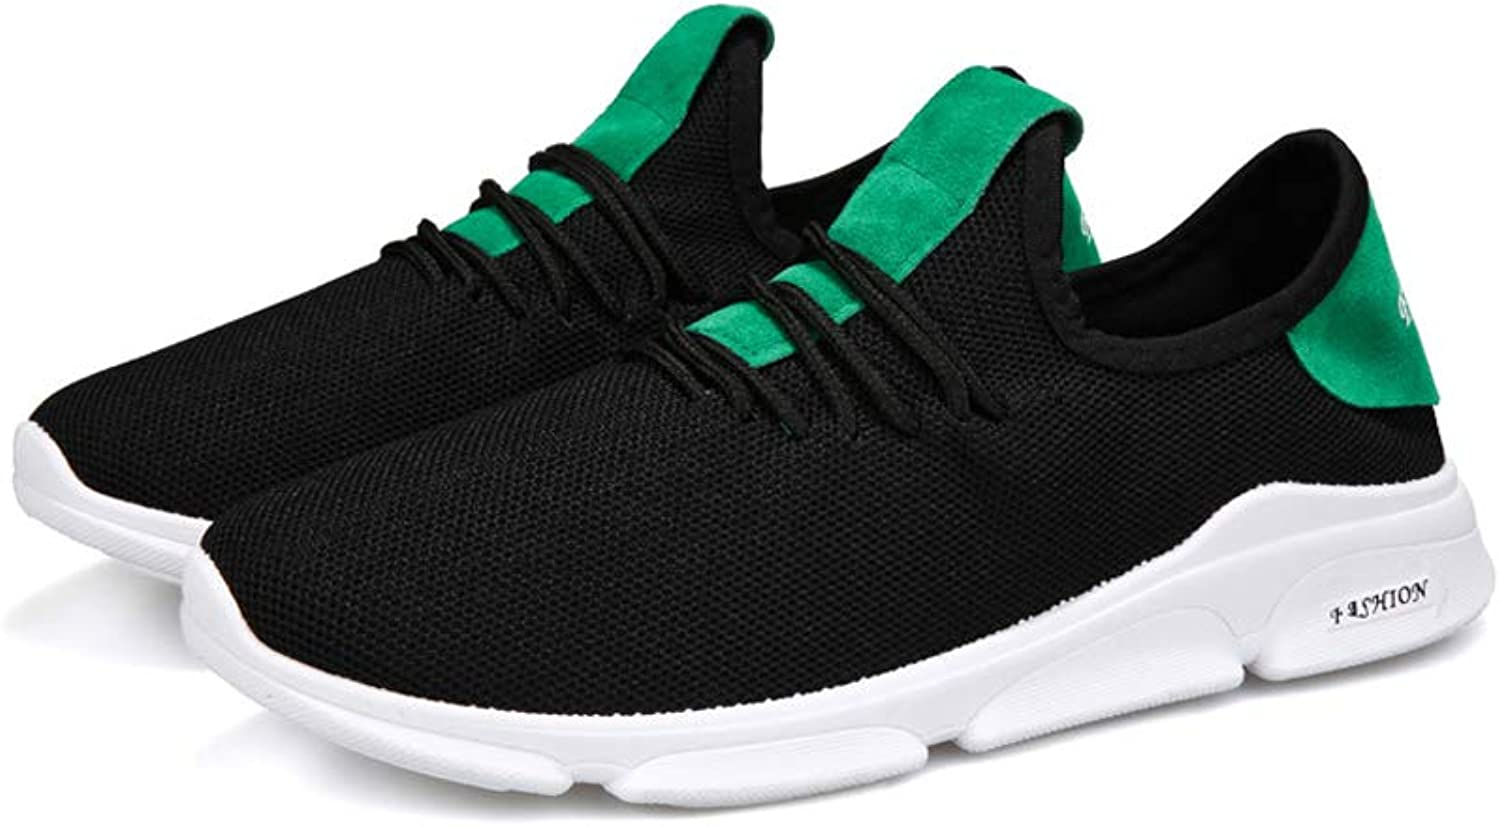 FUUI Mens Running shoes Trail Fashion Sneakers Tennis Sports Casual Walking Athletic Fitness Indoor and Outdoor shoes